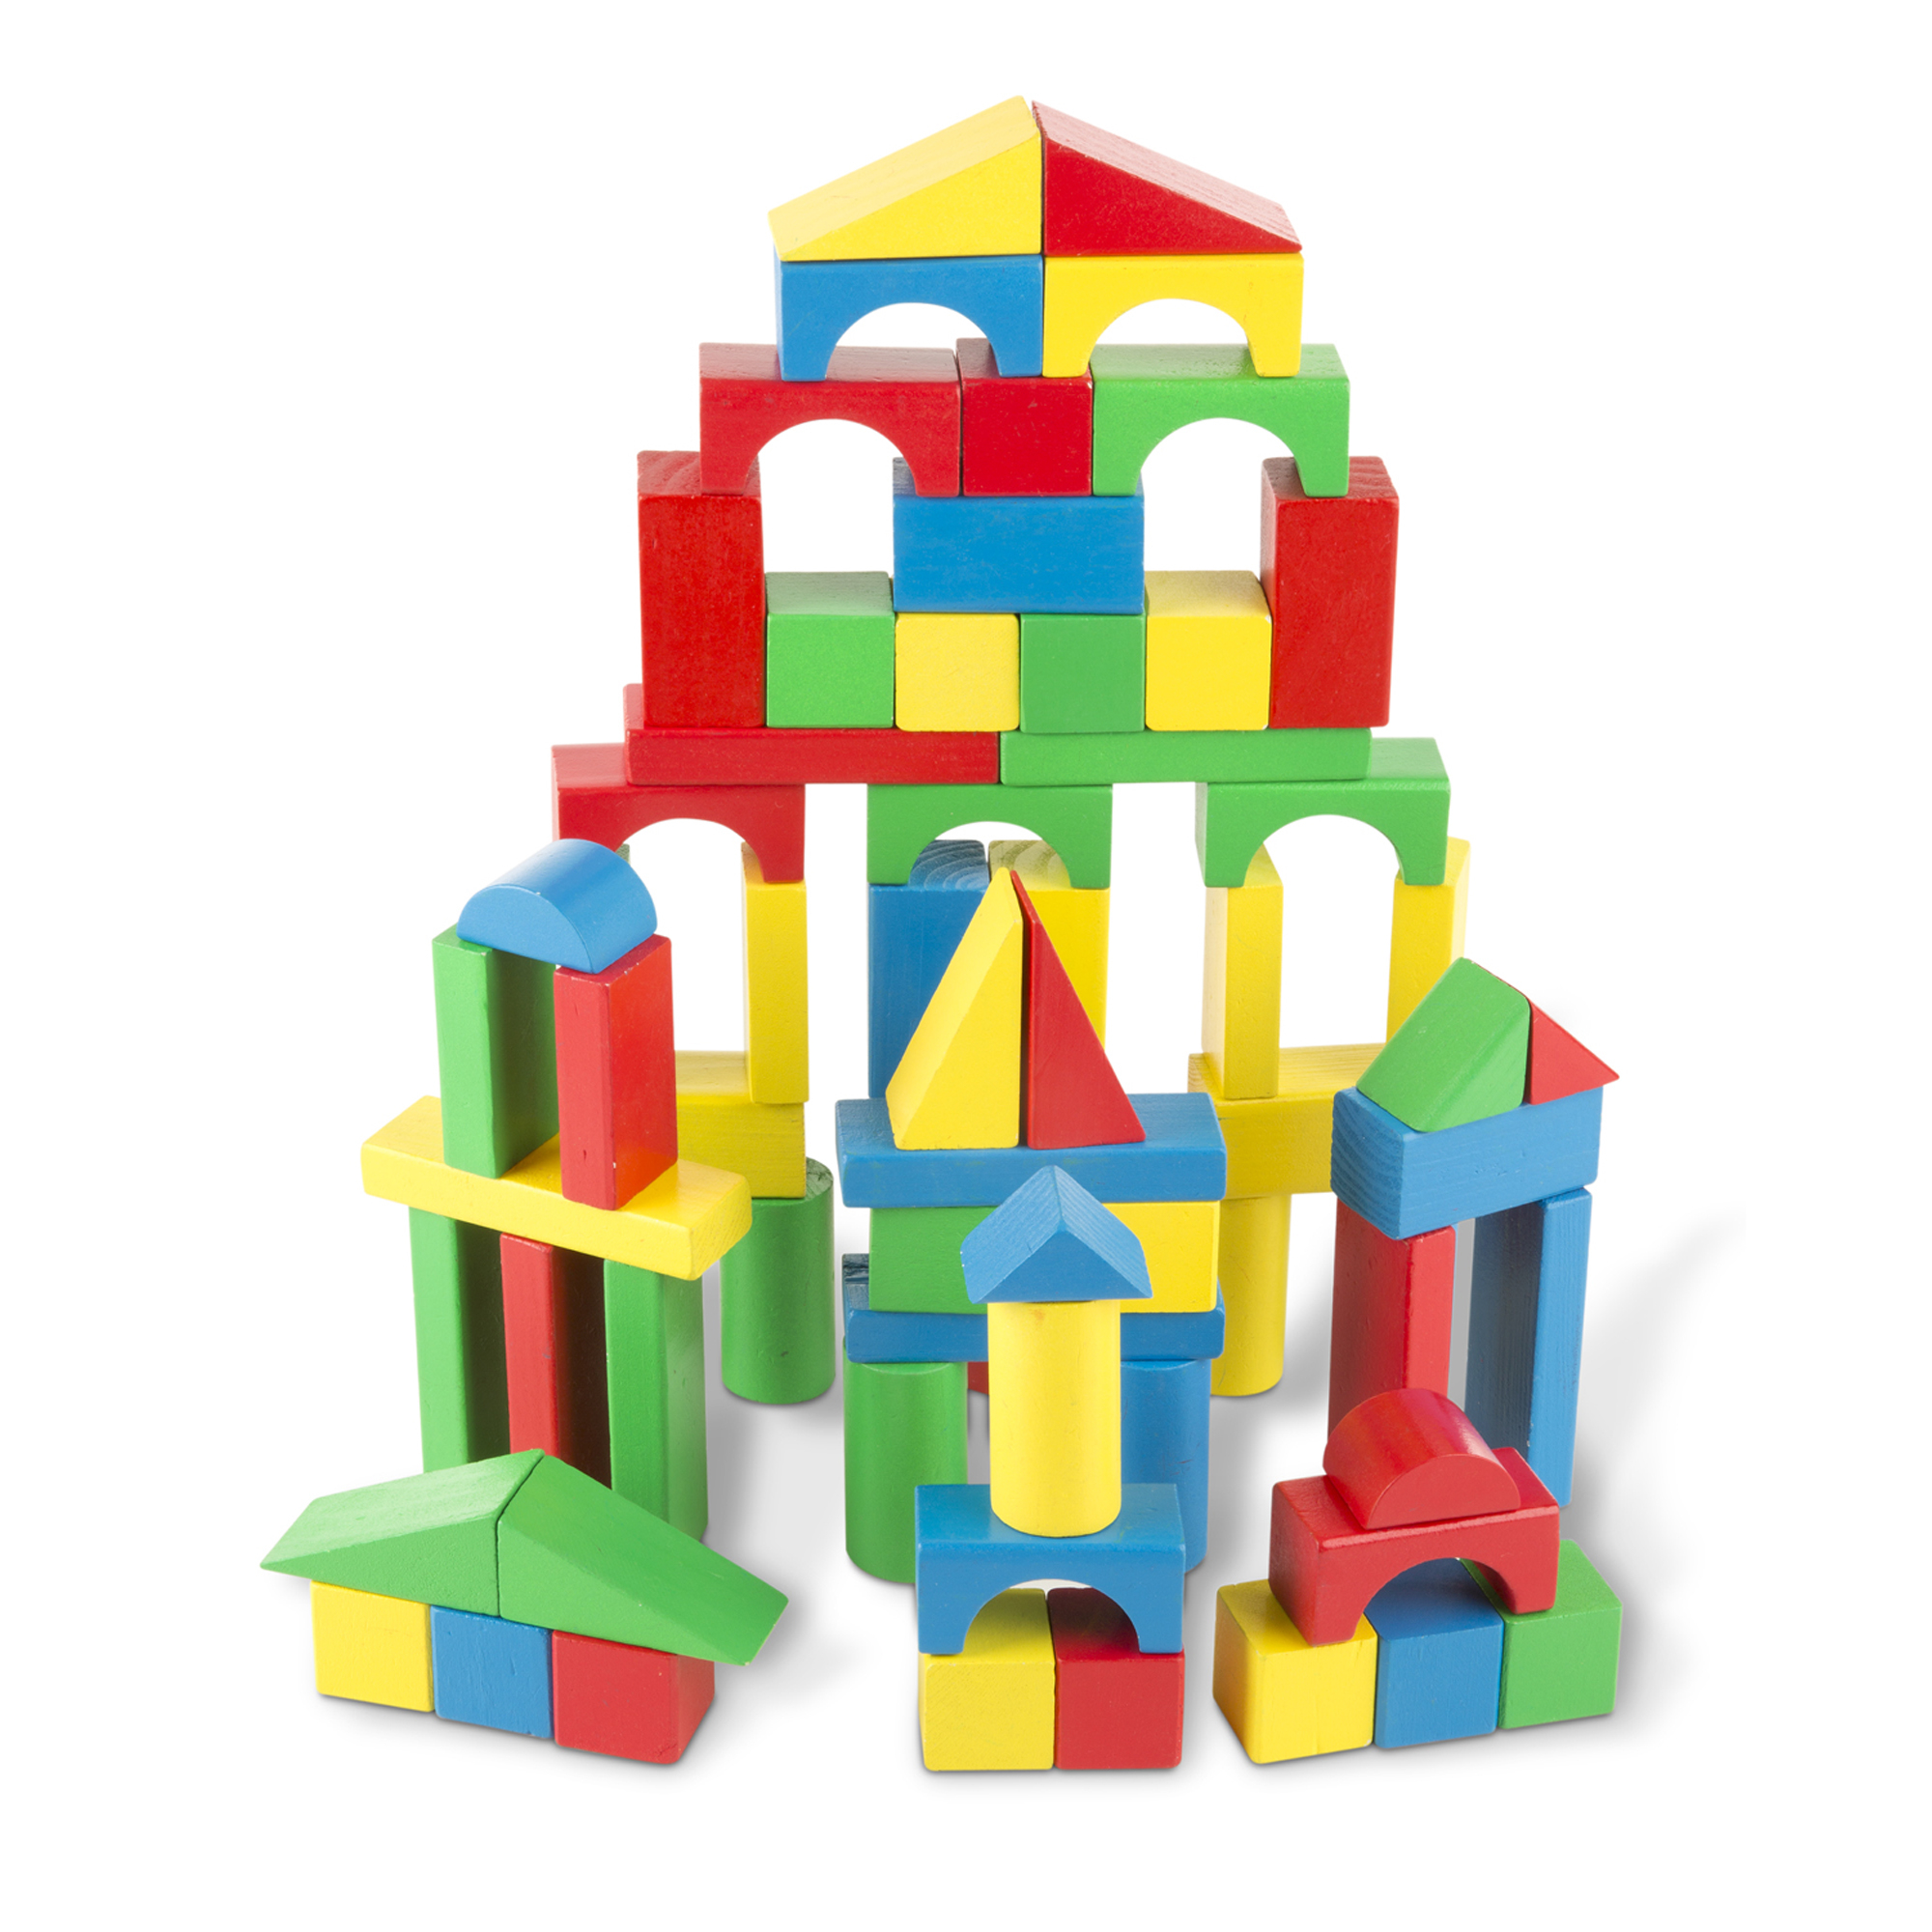 This favorite collection of 100 wooden blocks comes in four colors and nine shapes. Little builders will delight in stacking, building, and knocking down in countless colorful combinations, while gaining invaluable practice with fine motor skills and dexterity, color and shape recognition, and pre-math skills.